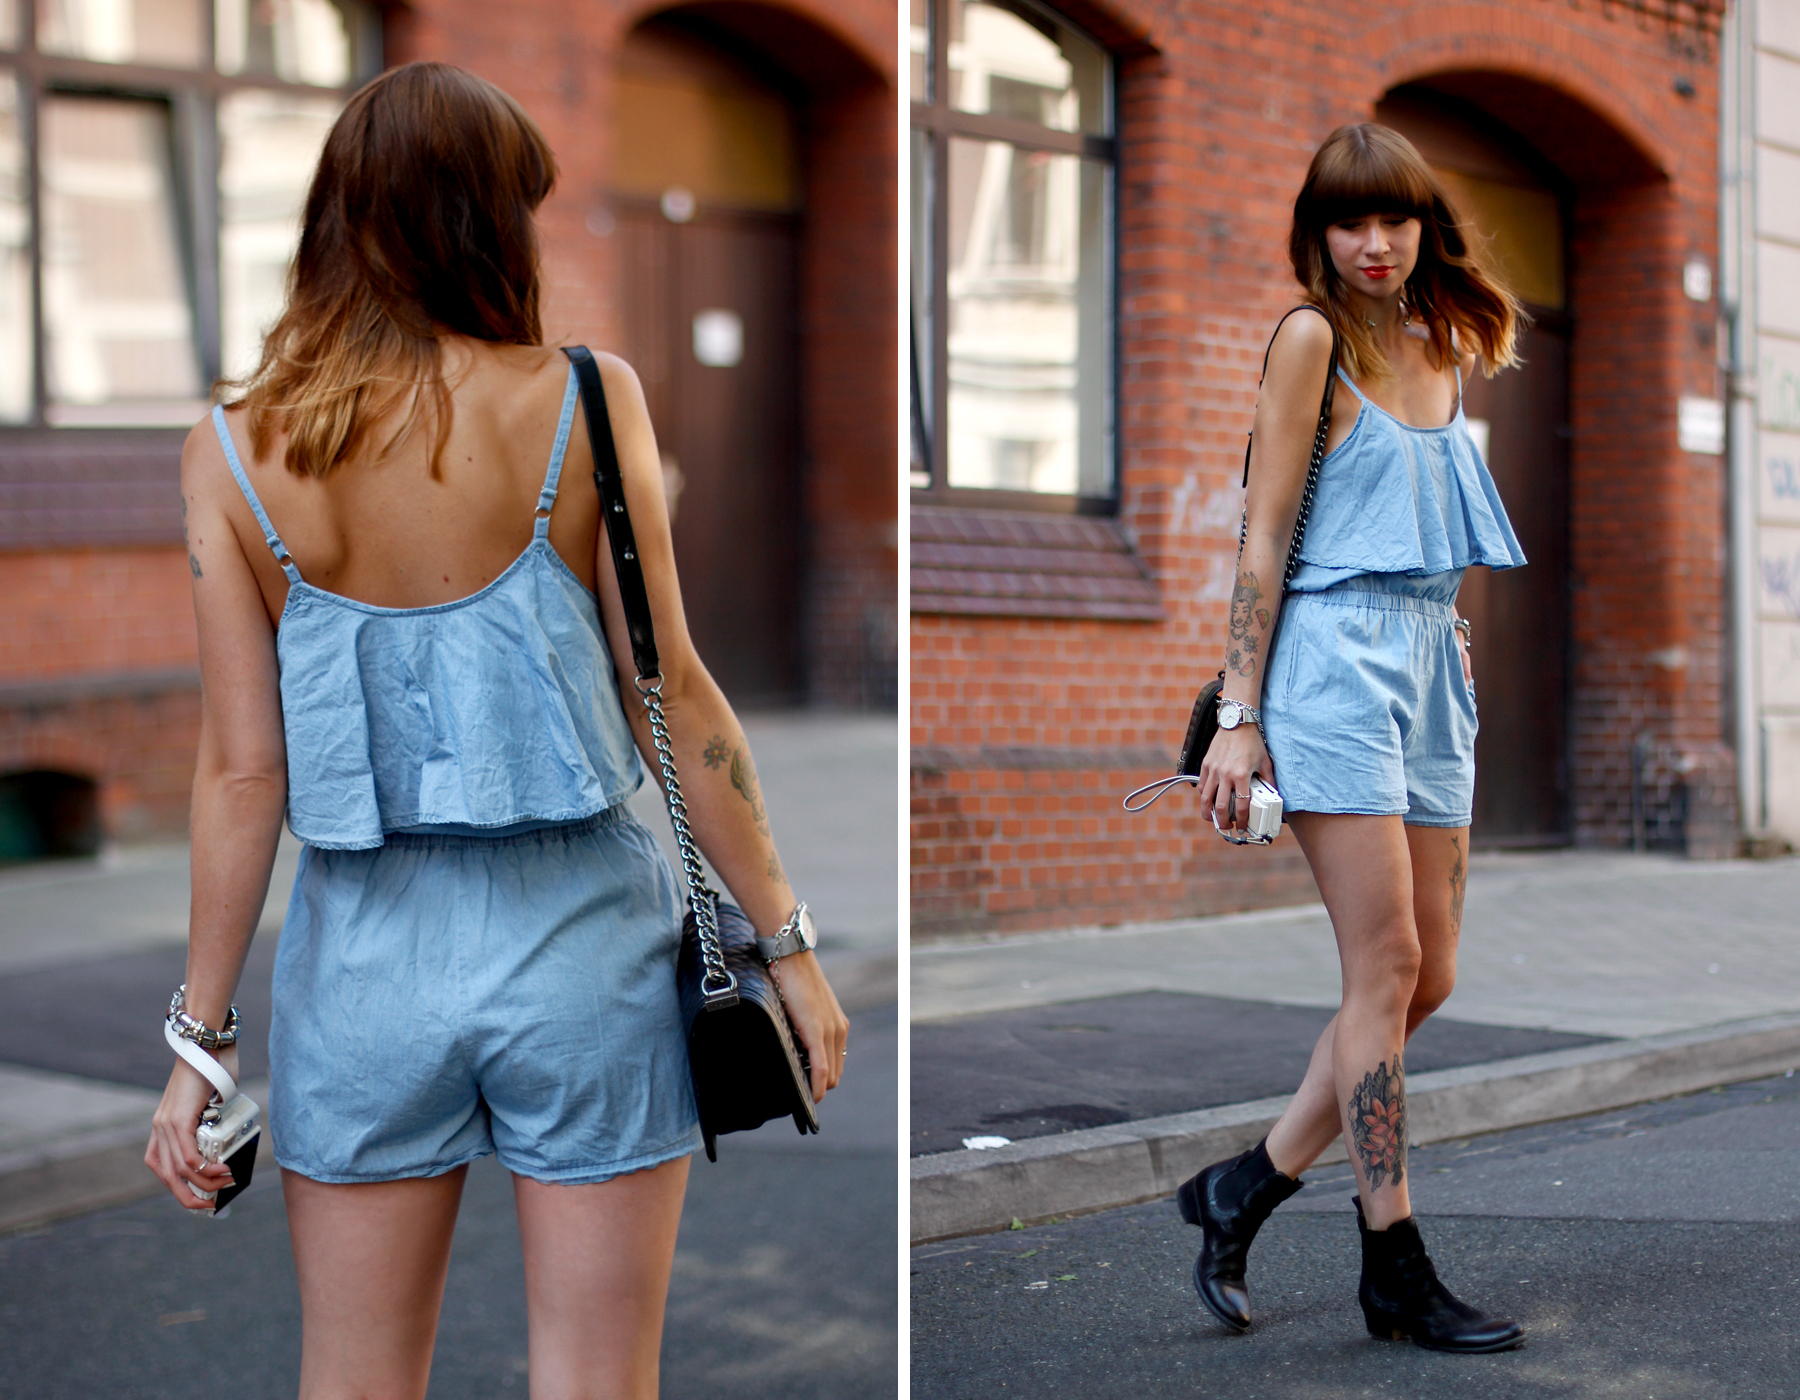 anziehend düsseldorf denim blue jumpsuit overall hellblau jeans chanel boots late summer spätsommer outfit ootd look cats & dogs ricarda schernus 6